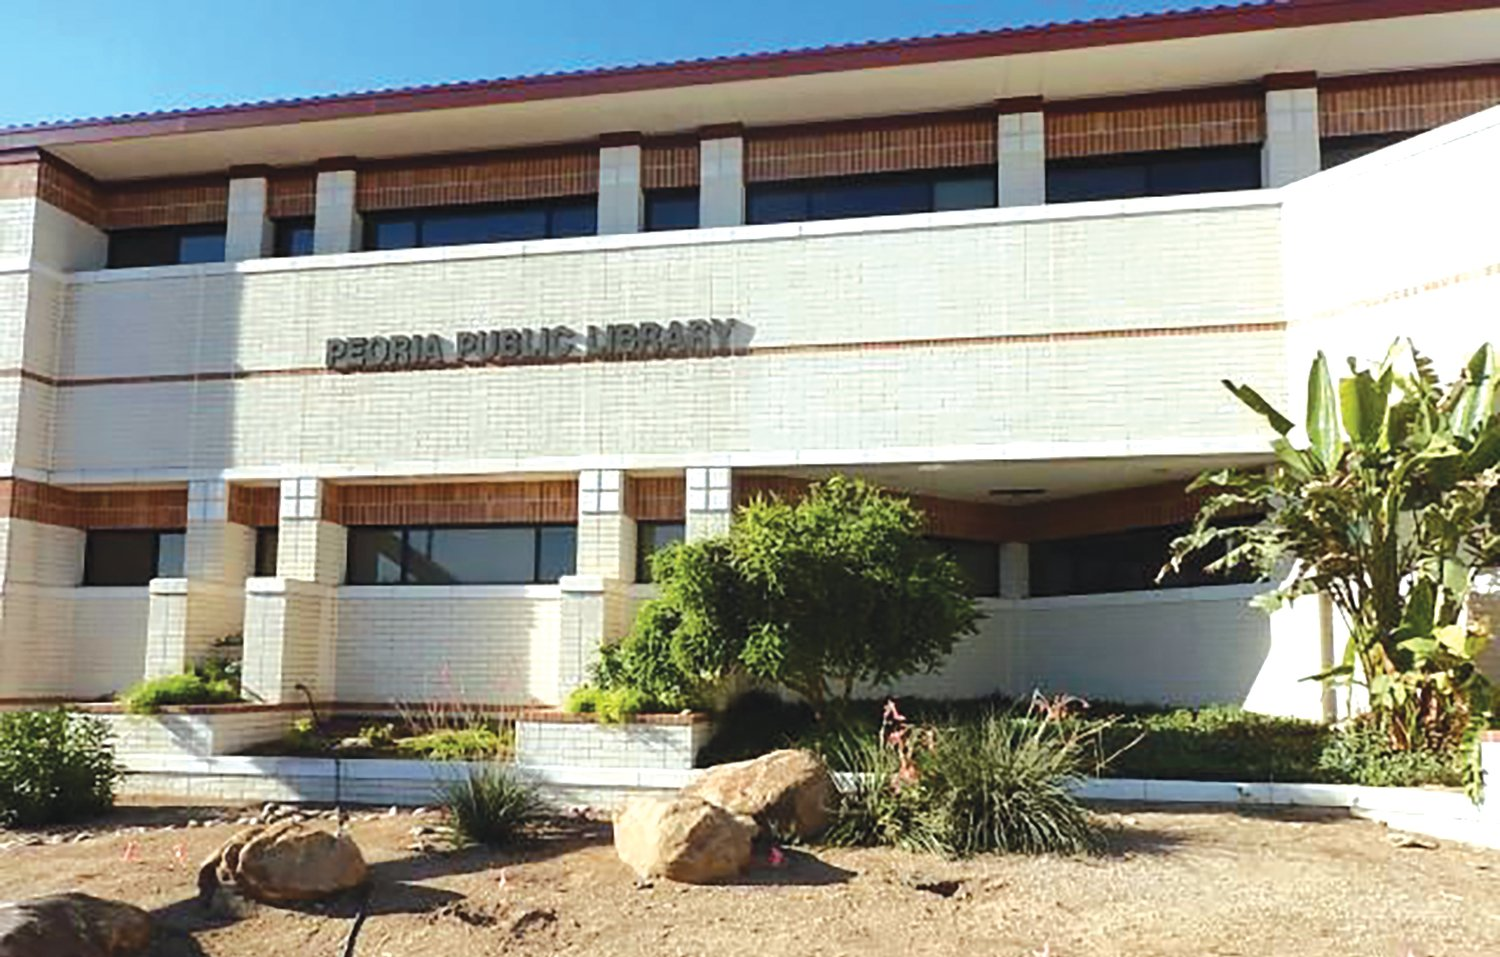 Design phase for indoor renovations of Peoria's main library will begin late spring.